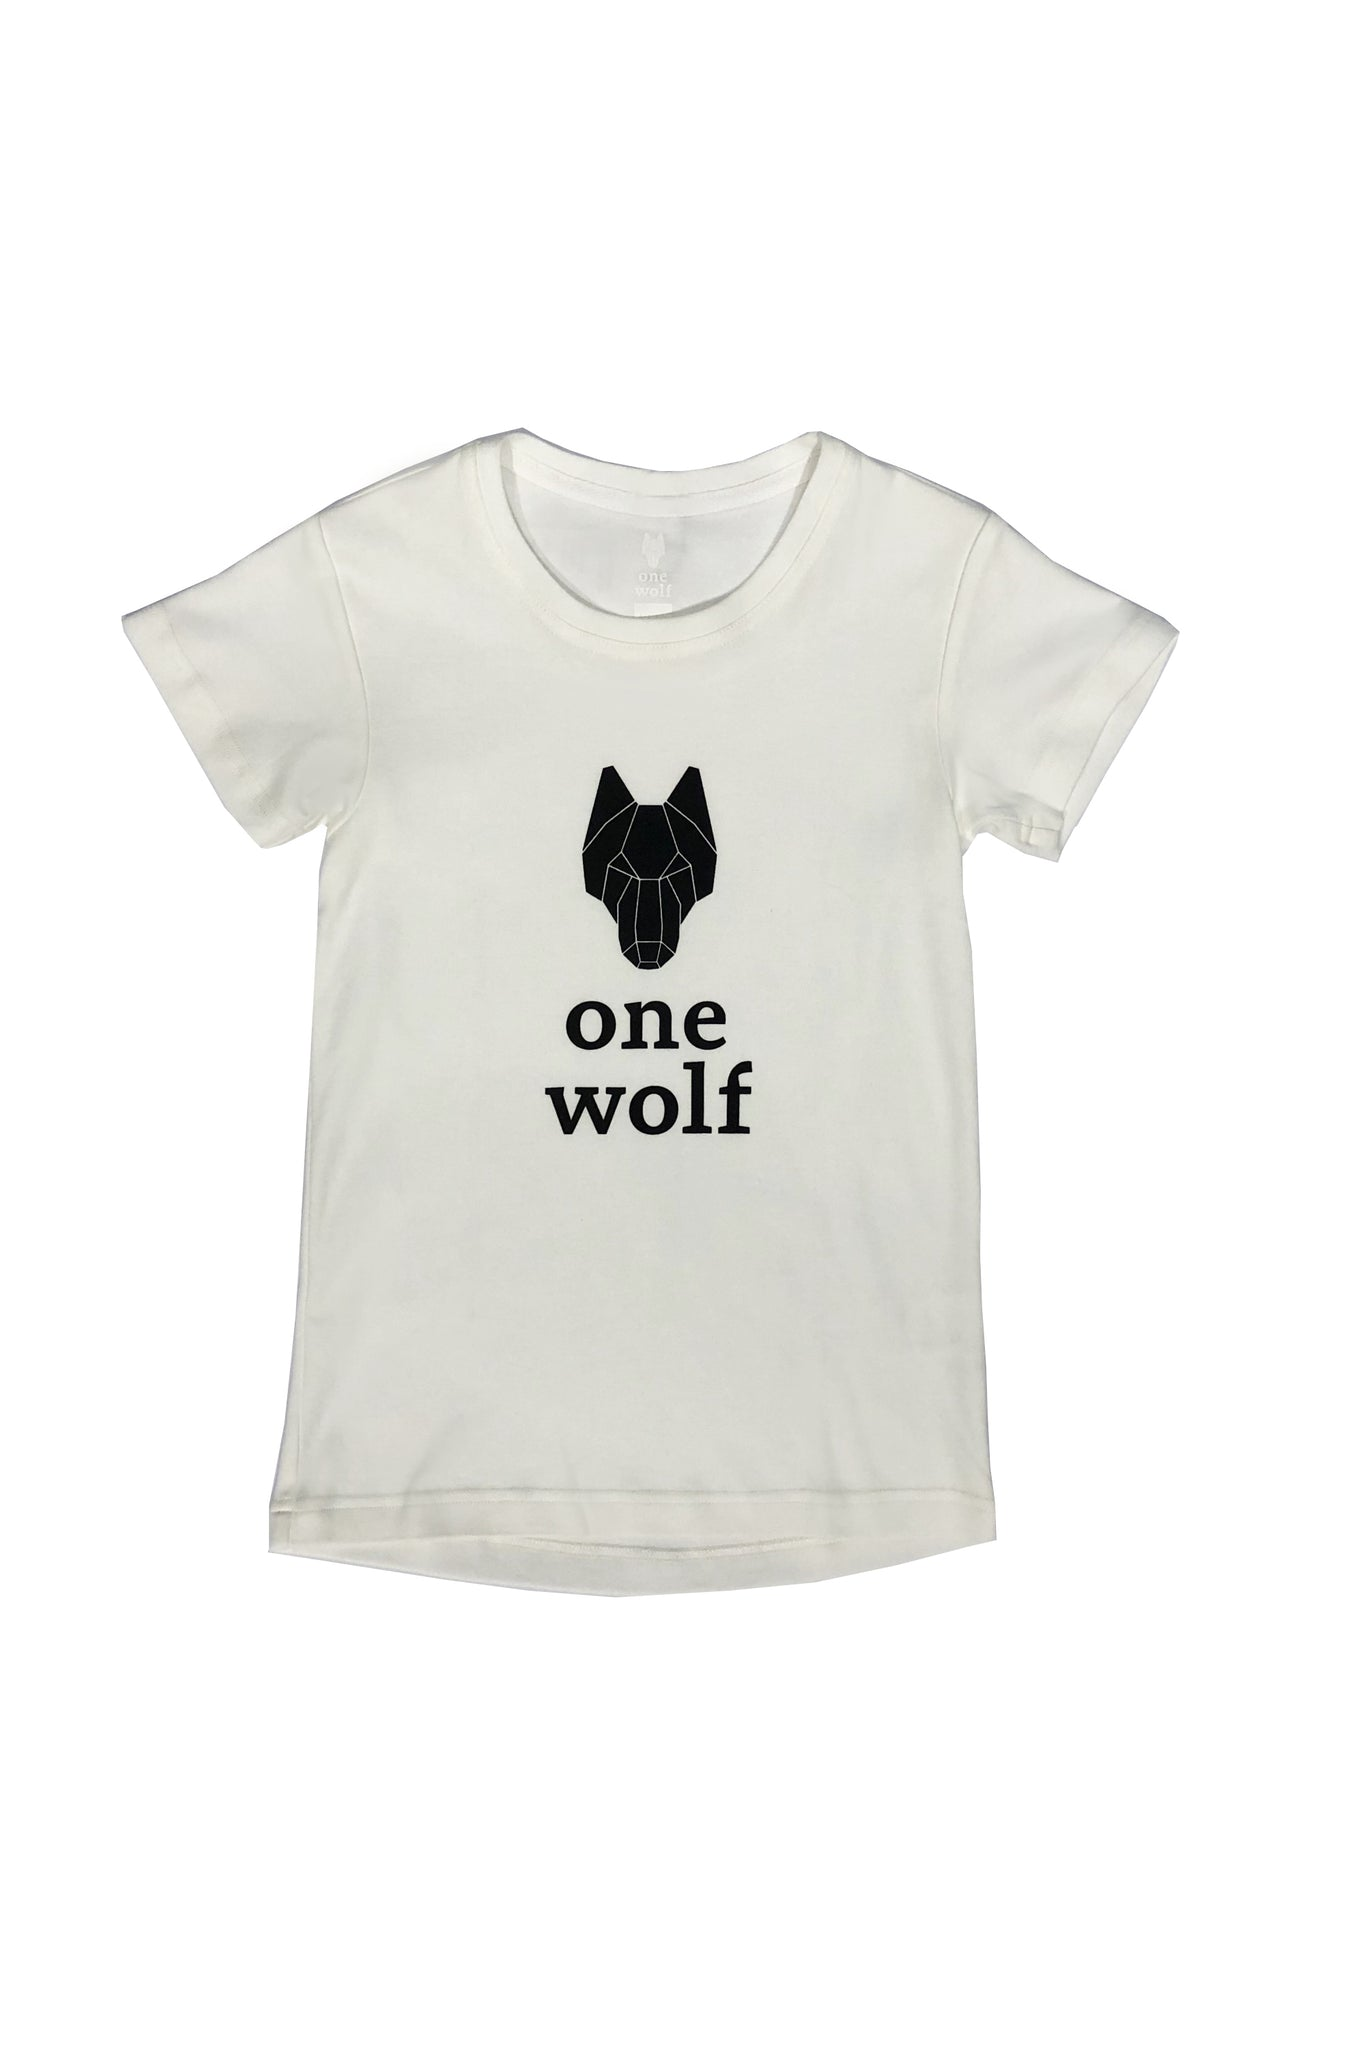 KIDS OW LOGO T-shirt white/black logo - One Wolf